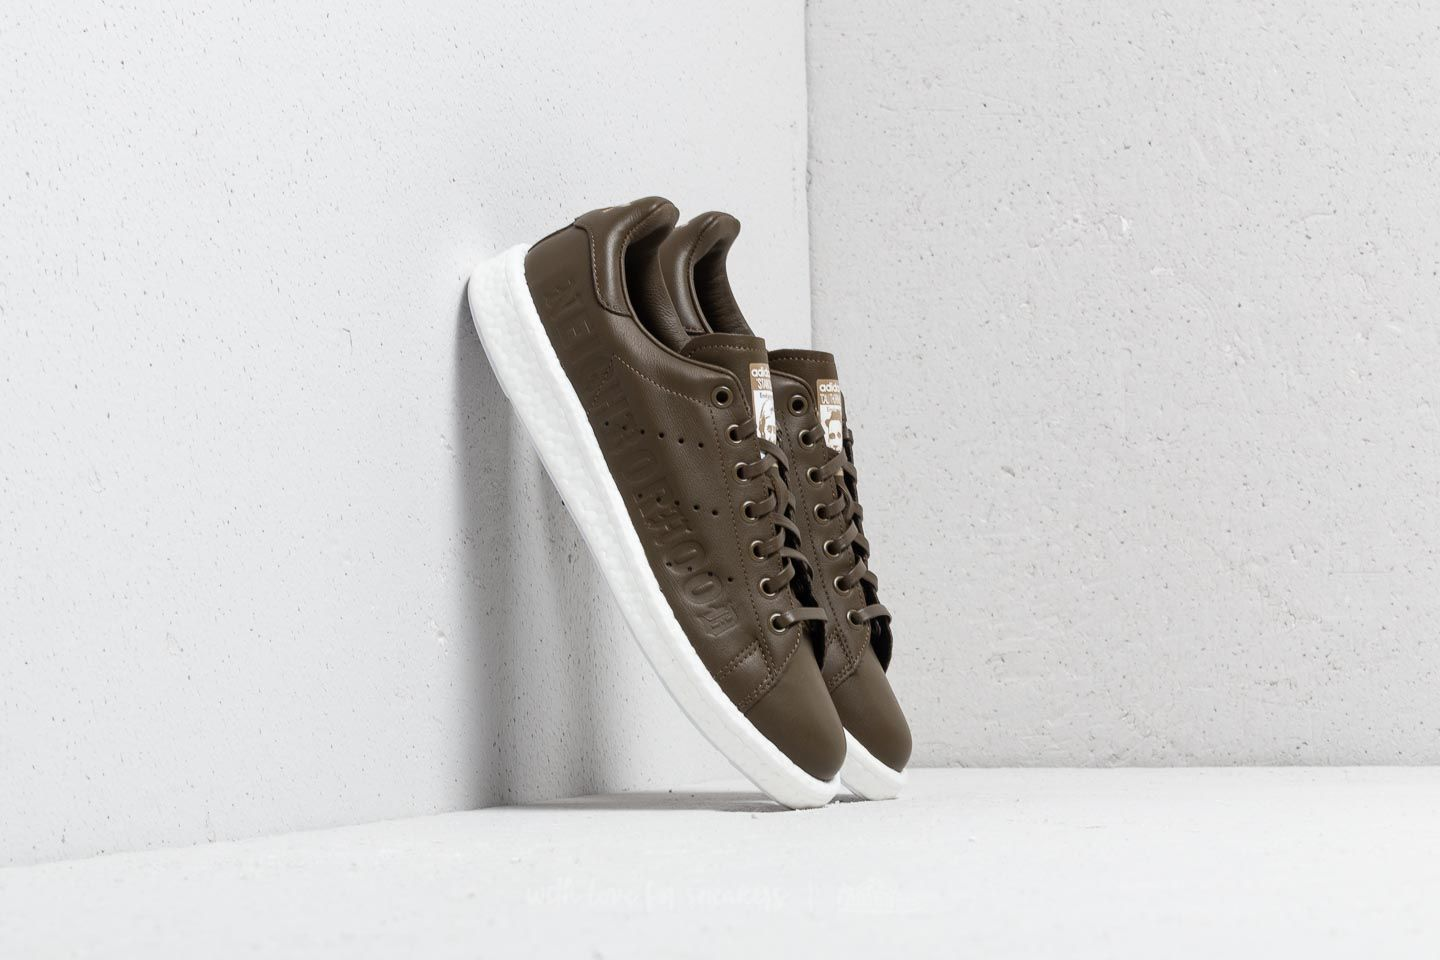 adidas x Neighborhood Stan Smith Boost Supplier Colour/ Supplier Colour/ Cloud White za skvělou cenu 2 790 Kč koupíte na Footshop.cz